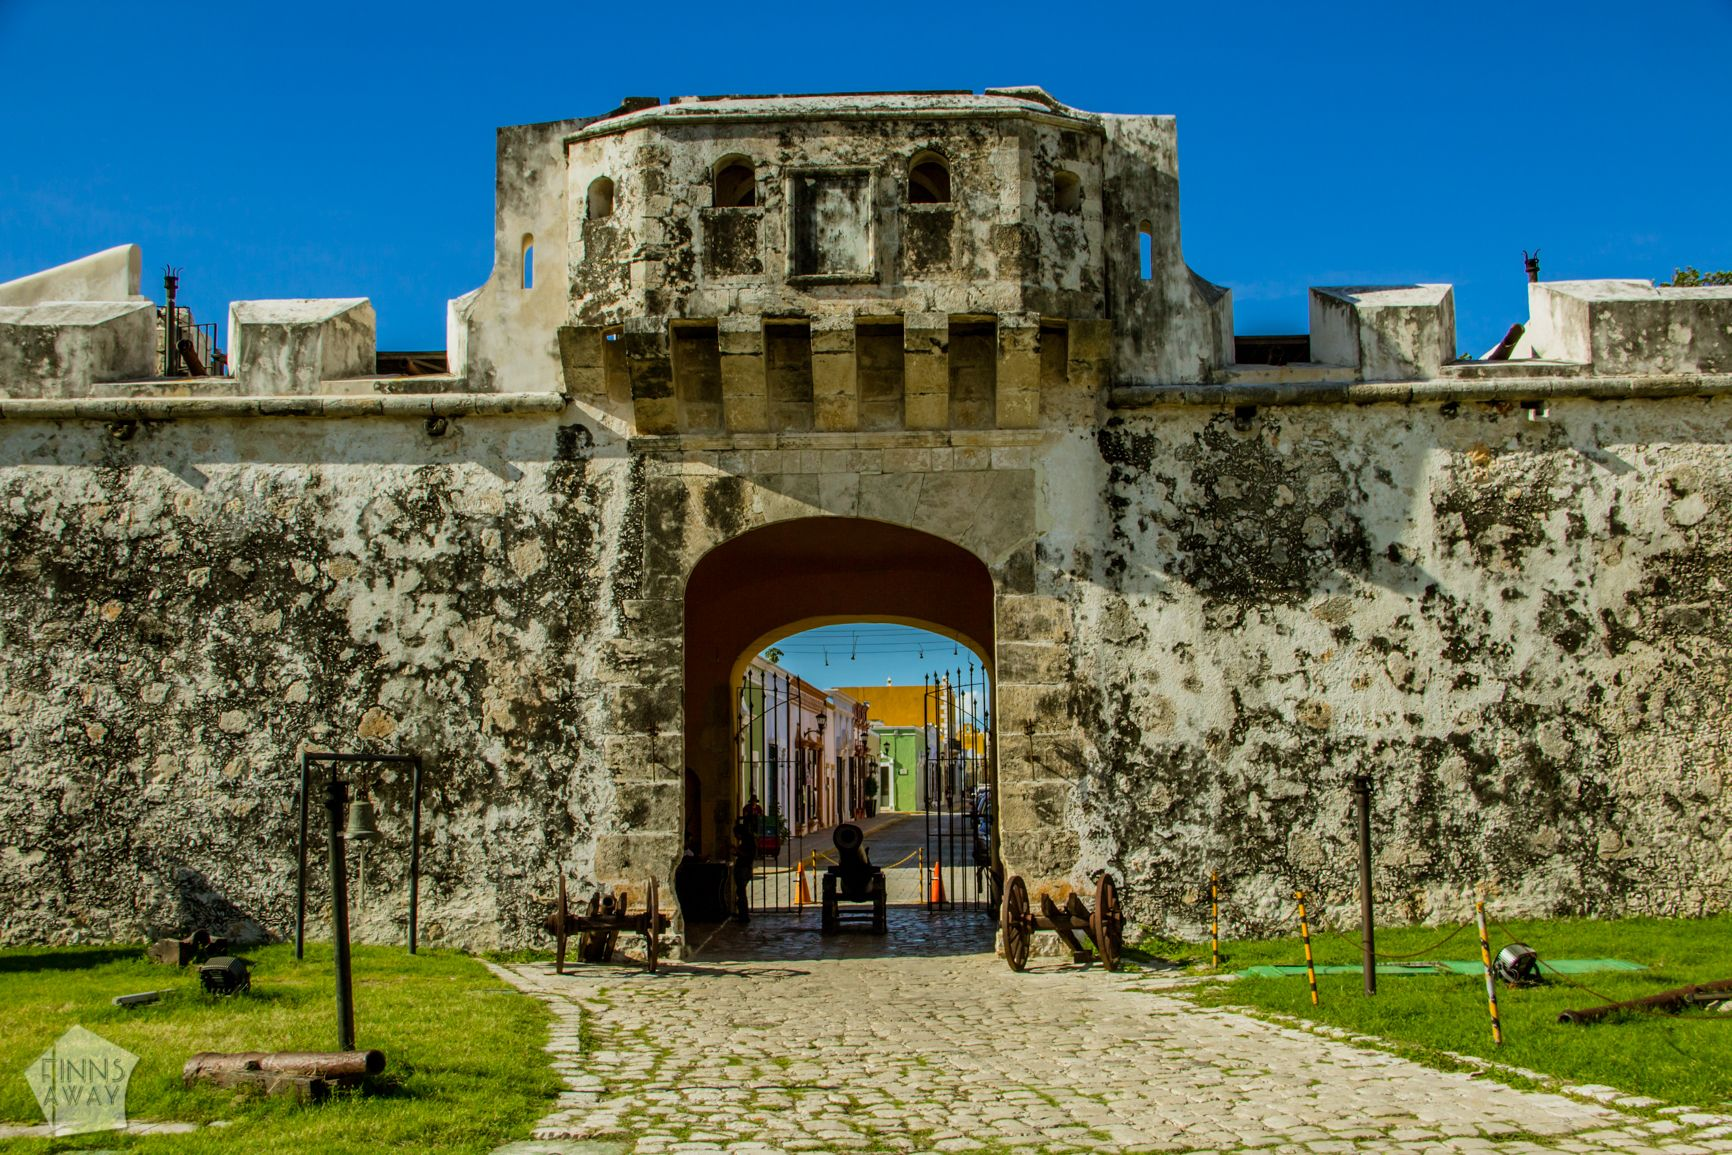 Puerta de Tierra Campeche in Yucatan Peninsula, Mexico, is famous for a walled historical center with colonial architecture | FinnsAway Travel Blog